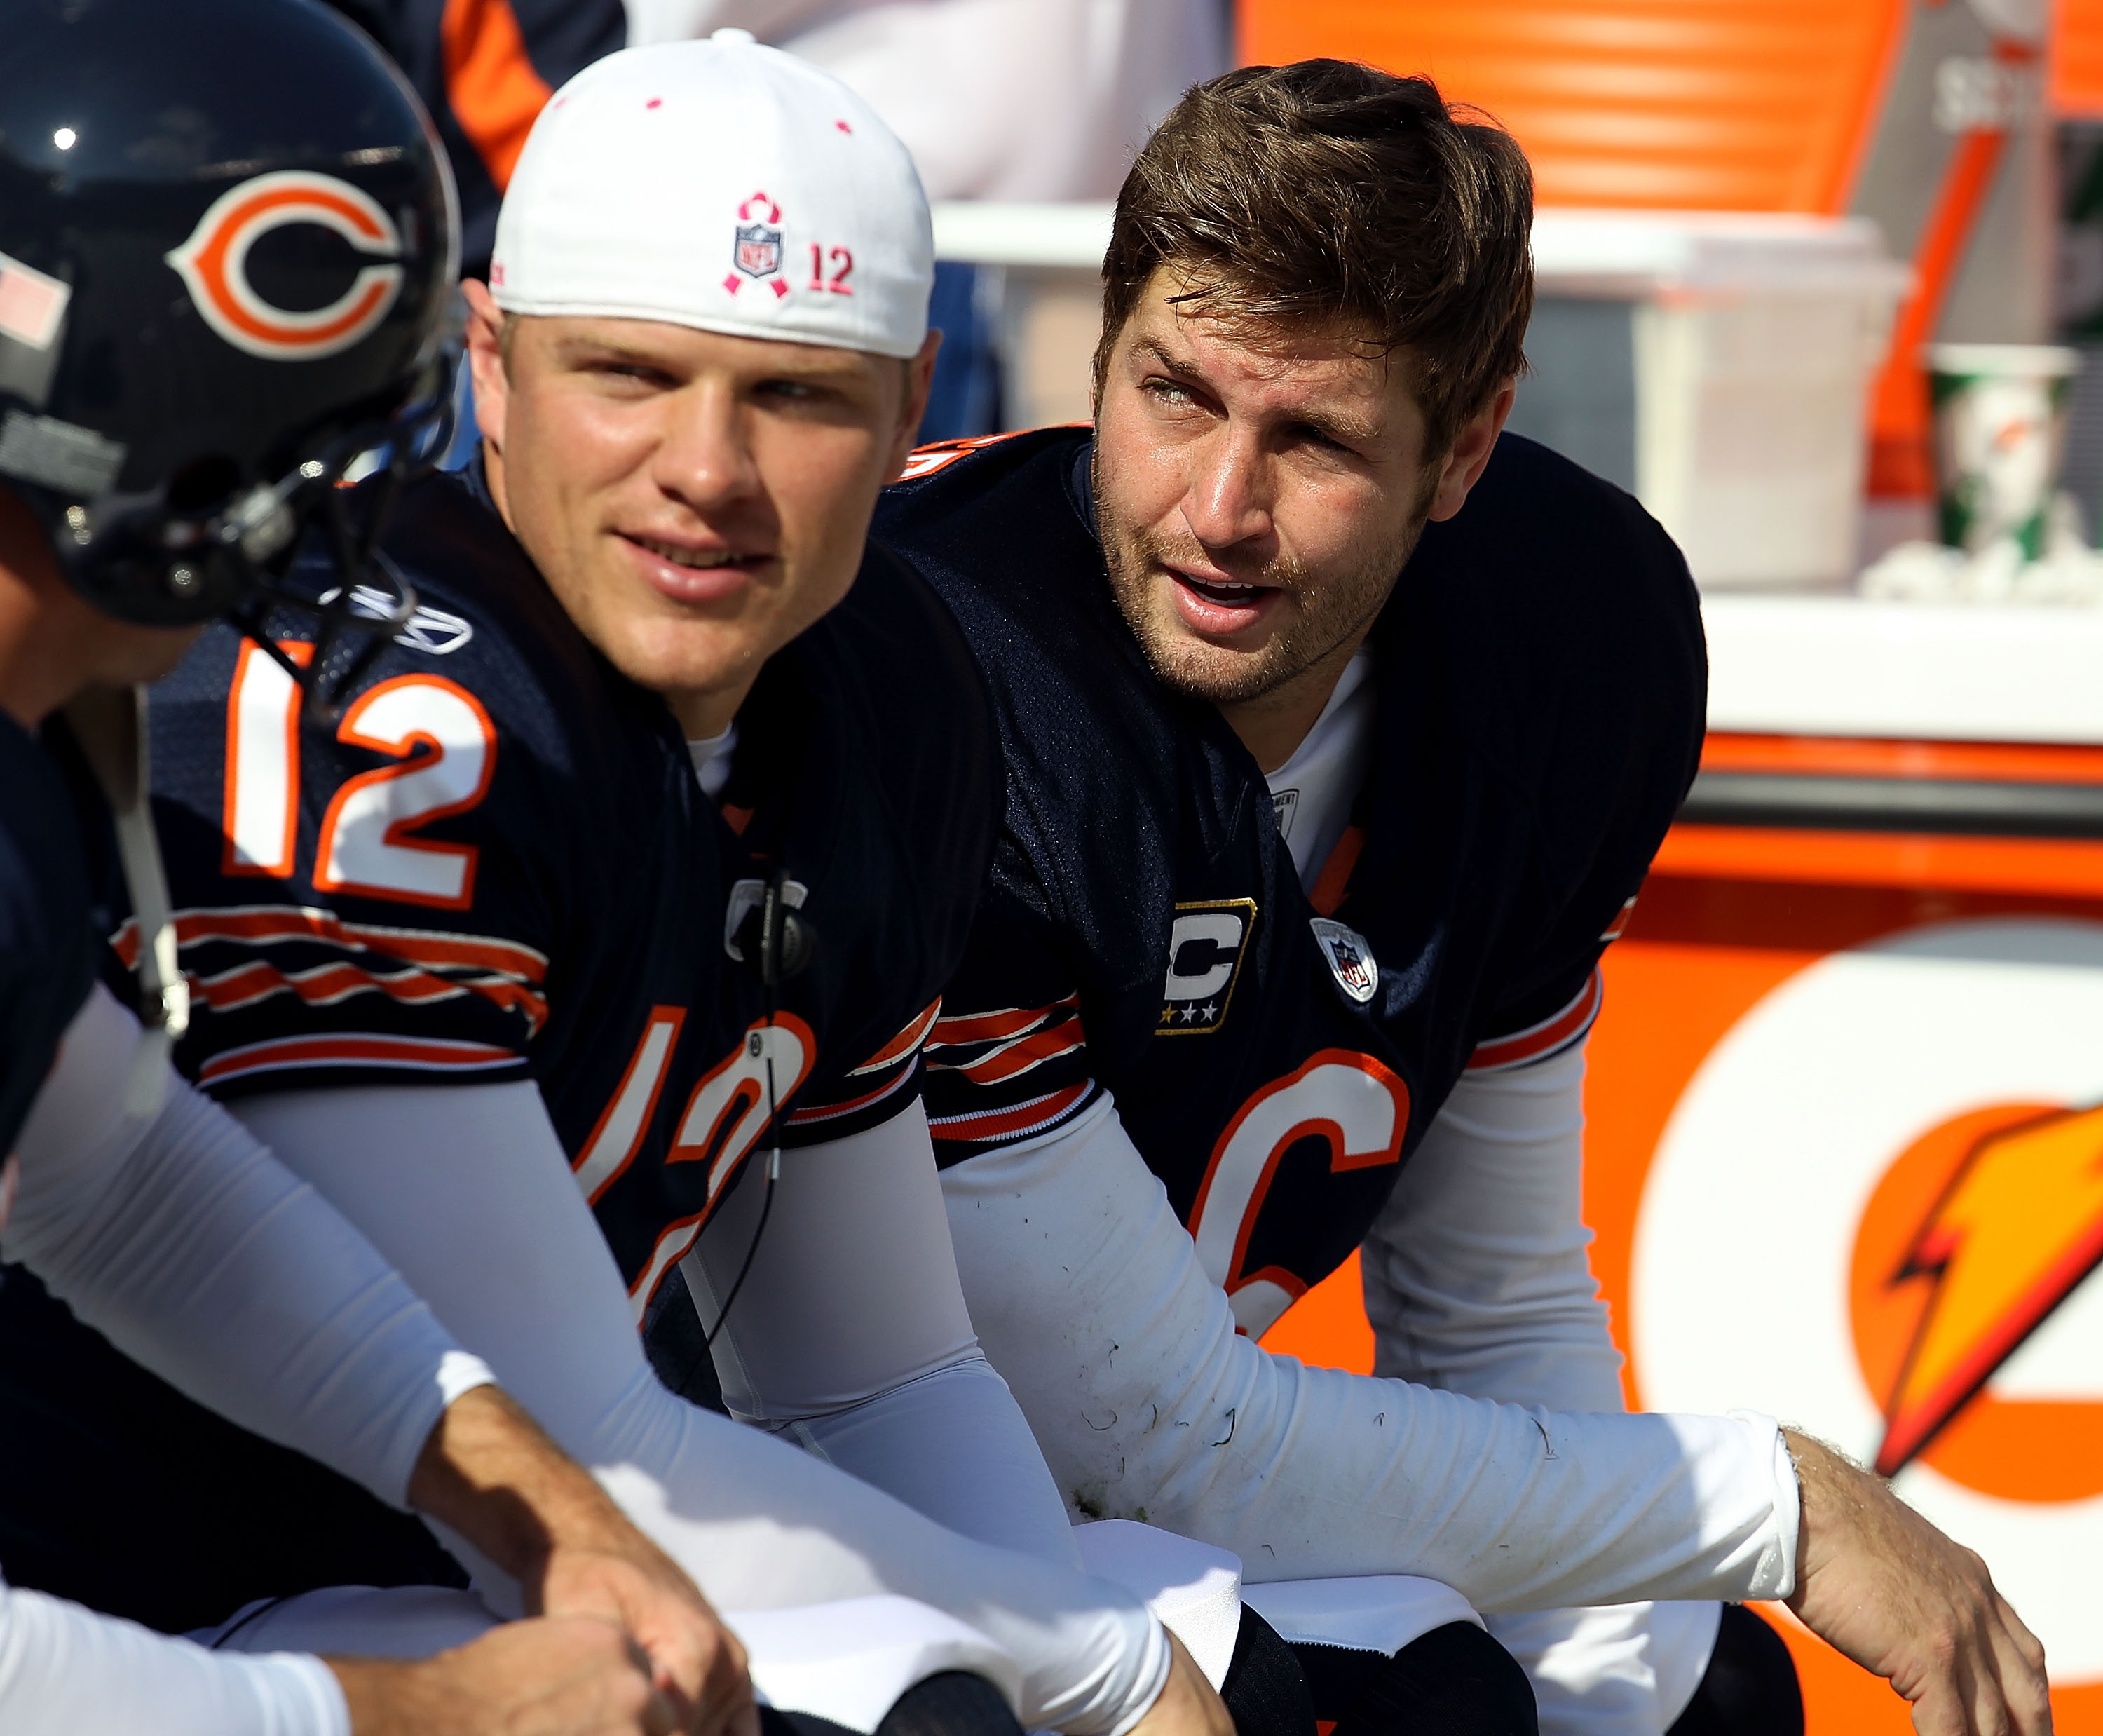 CHICAGO - OCTOBER 24: Jay Cutler #6 of the Chicago Bears talks with teammates including Caleb Hanie #12 on the bench during a game against the Washington Redskins at Soldier Field on October 24, 2010 in Chicago, Illinois. The Redskins defeated the Bears 1